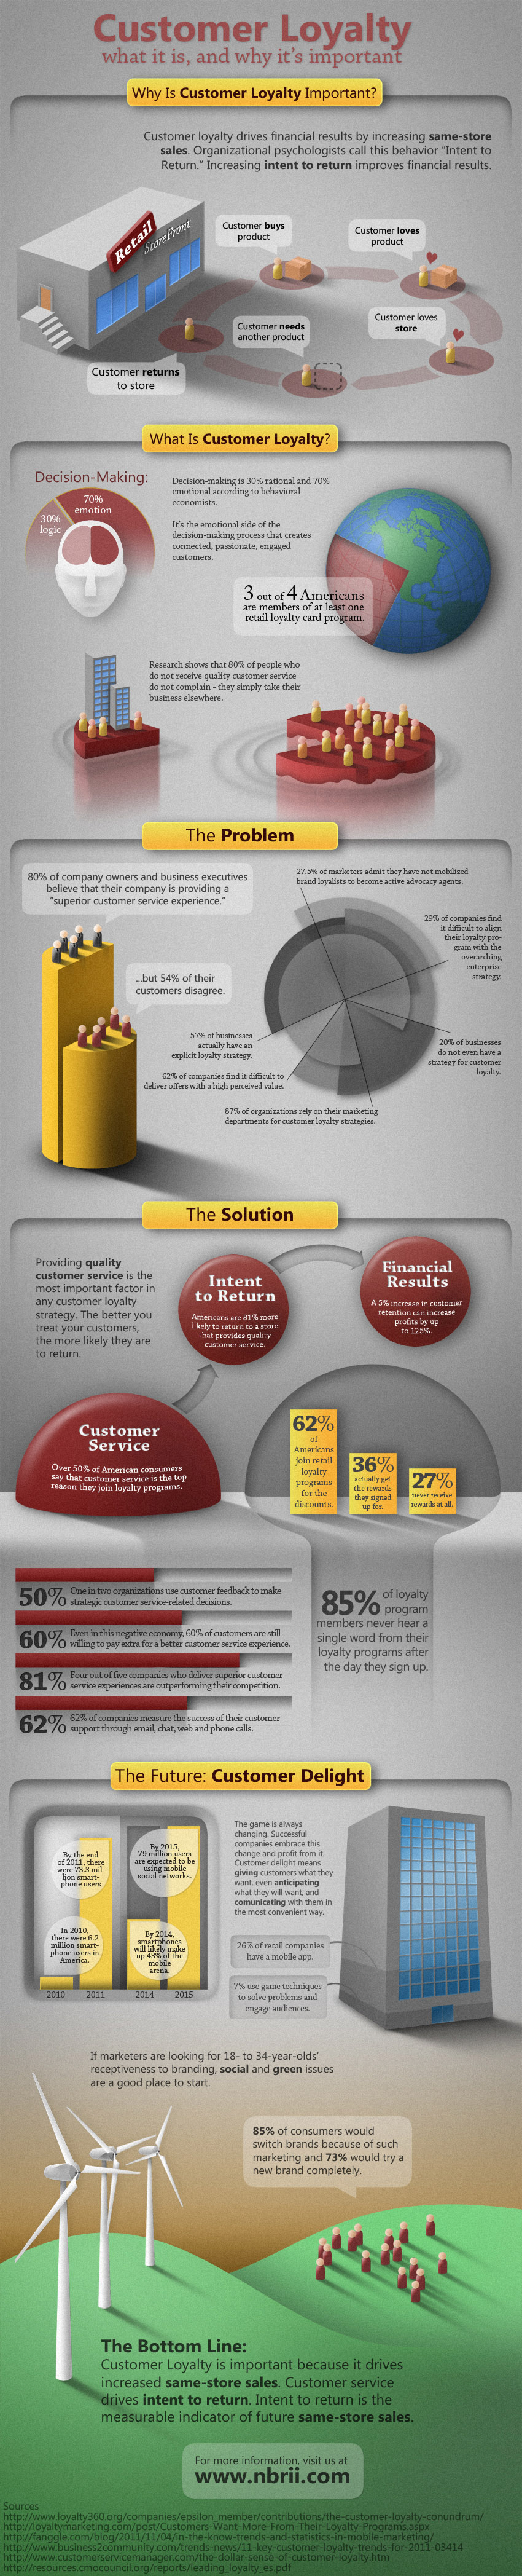 Customer-Loyalty-infographic